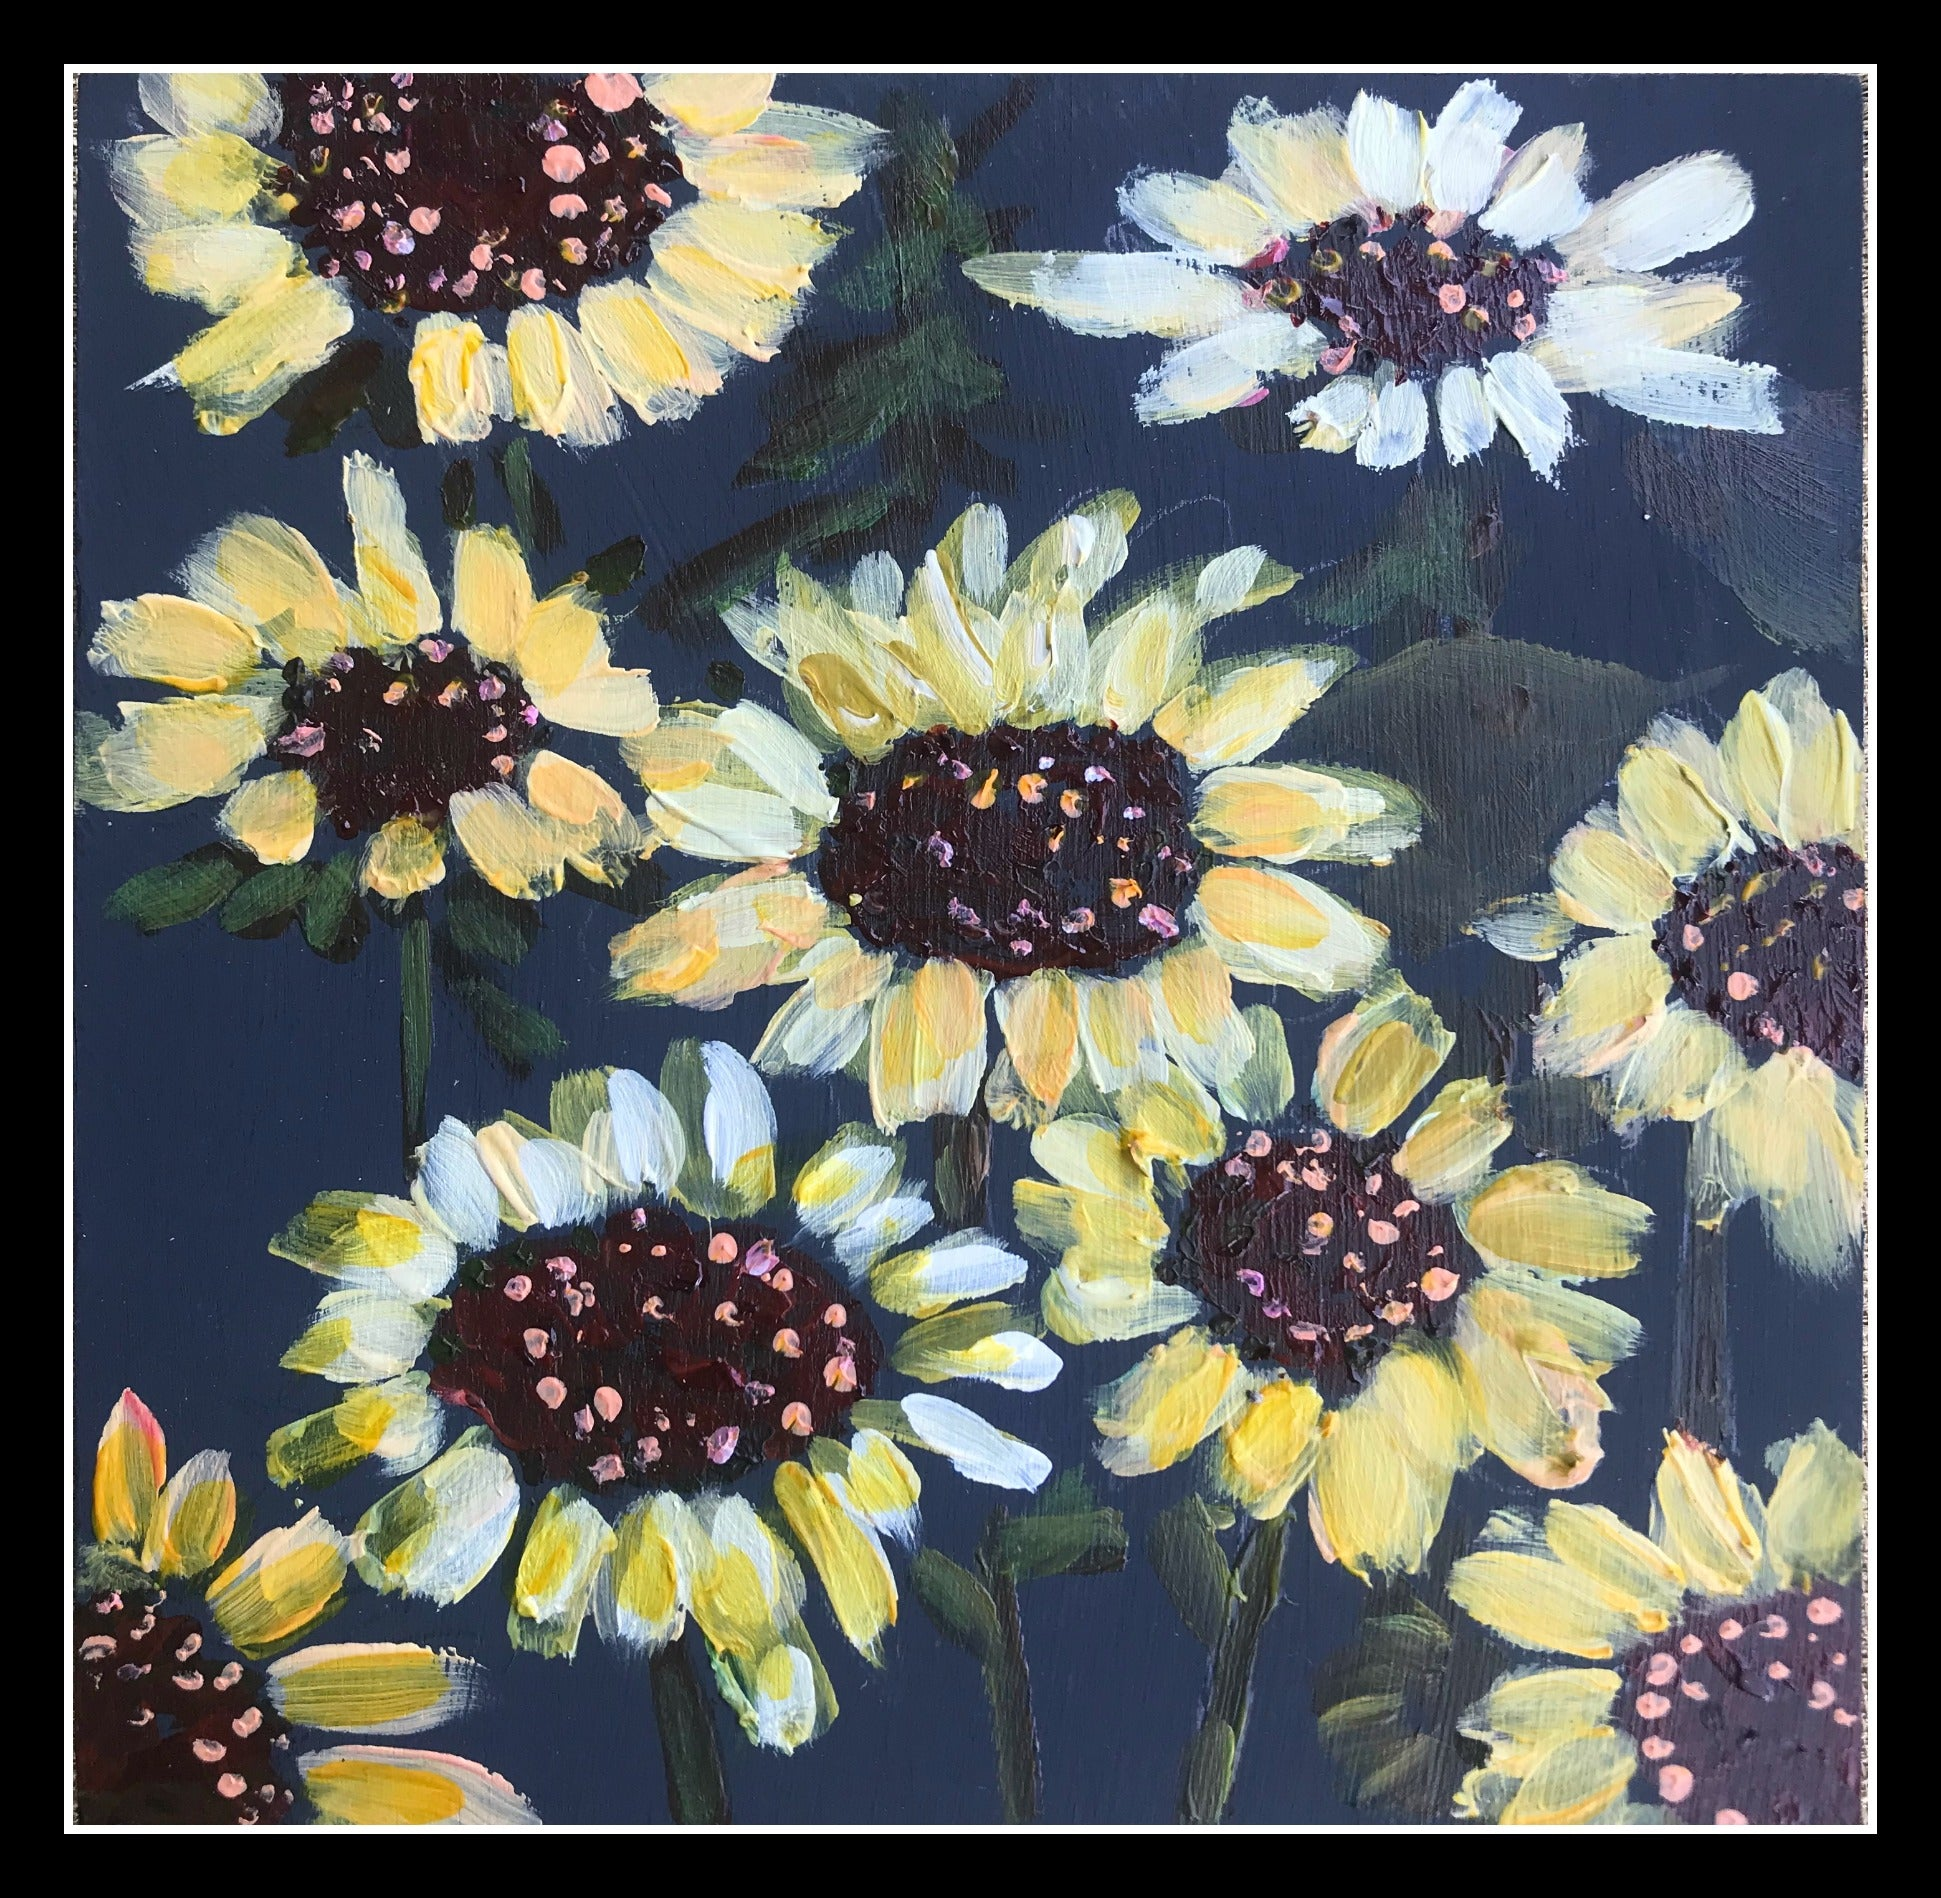 ECHINACEA FIELD, Original Art by Rea Kelly